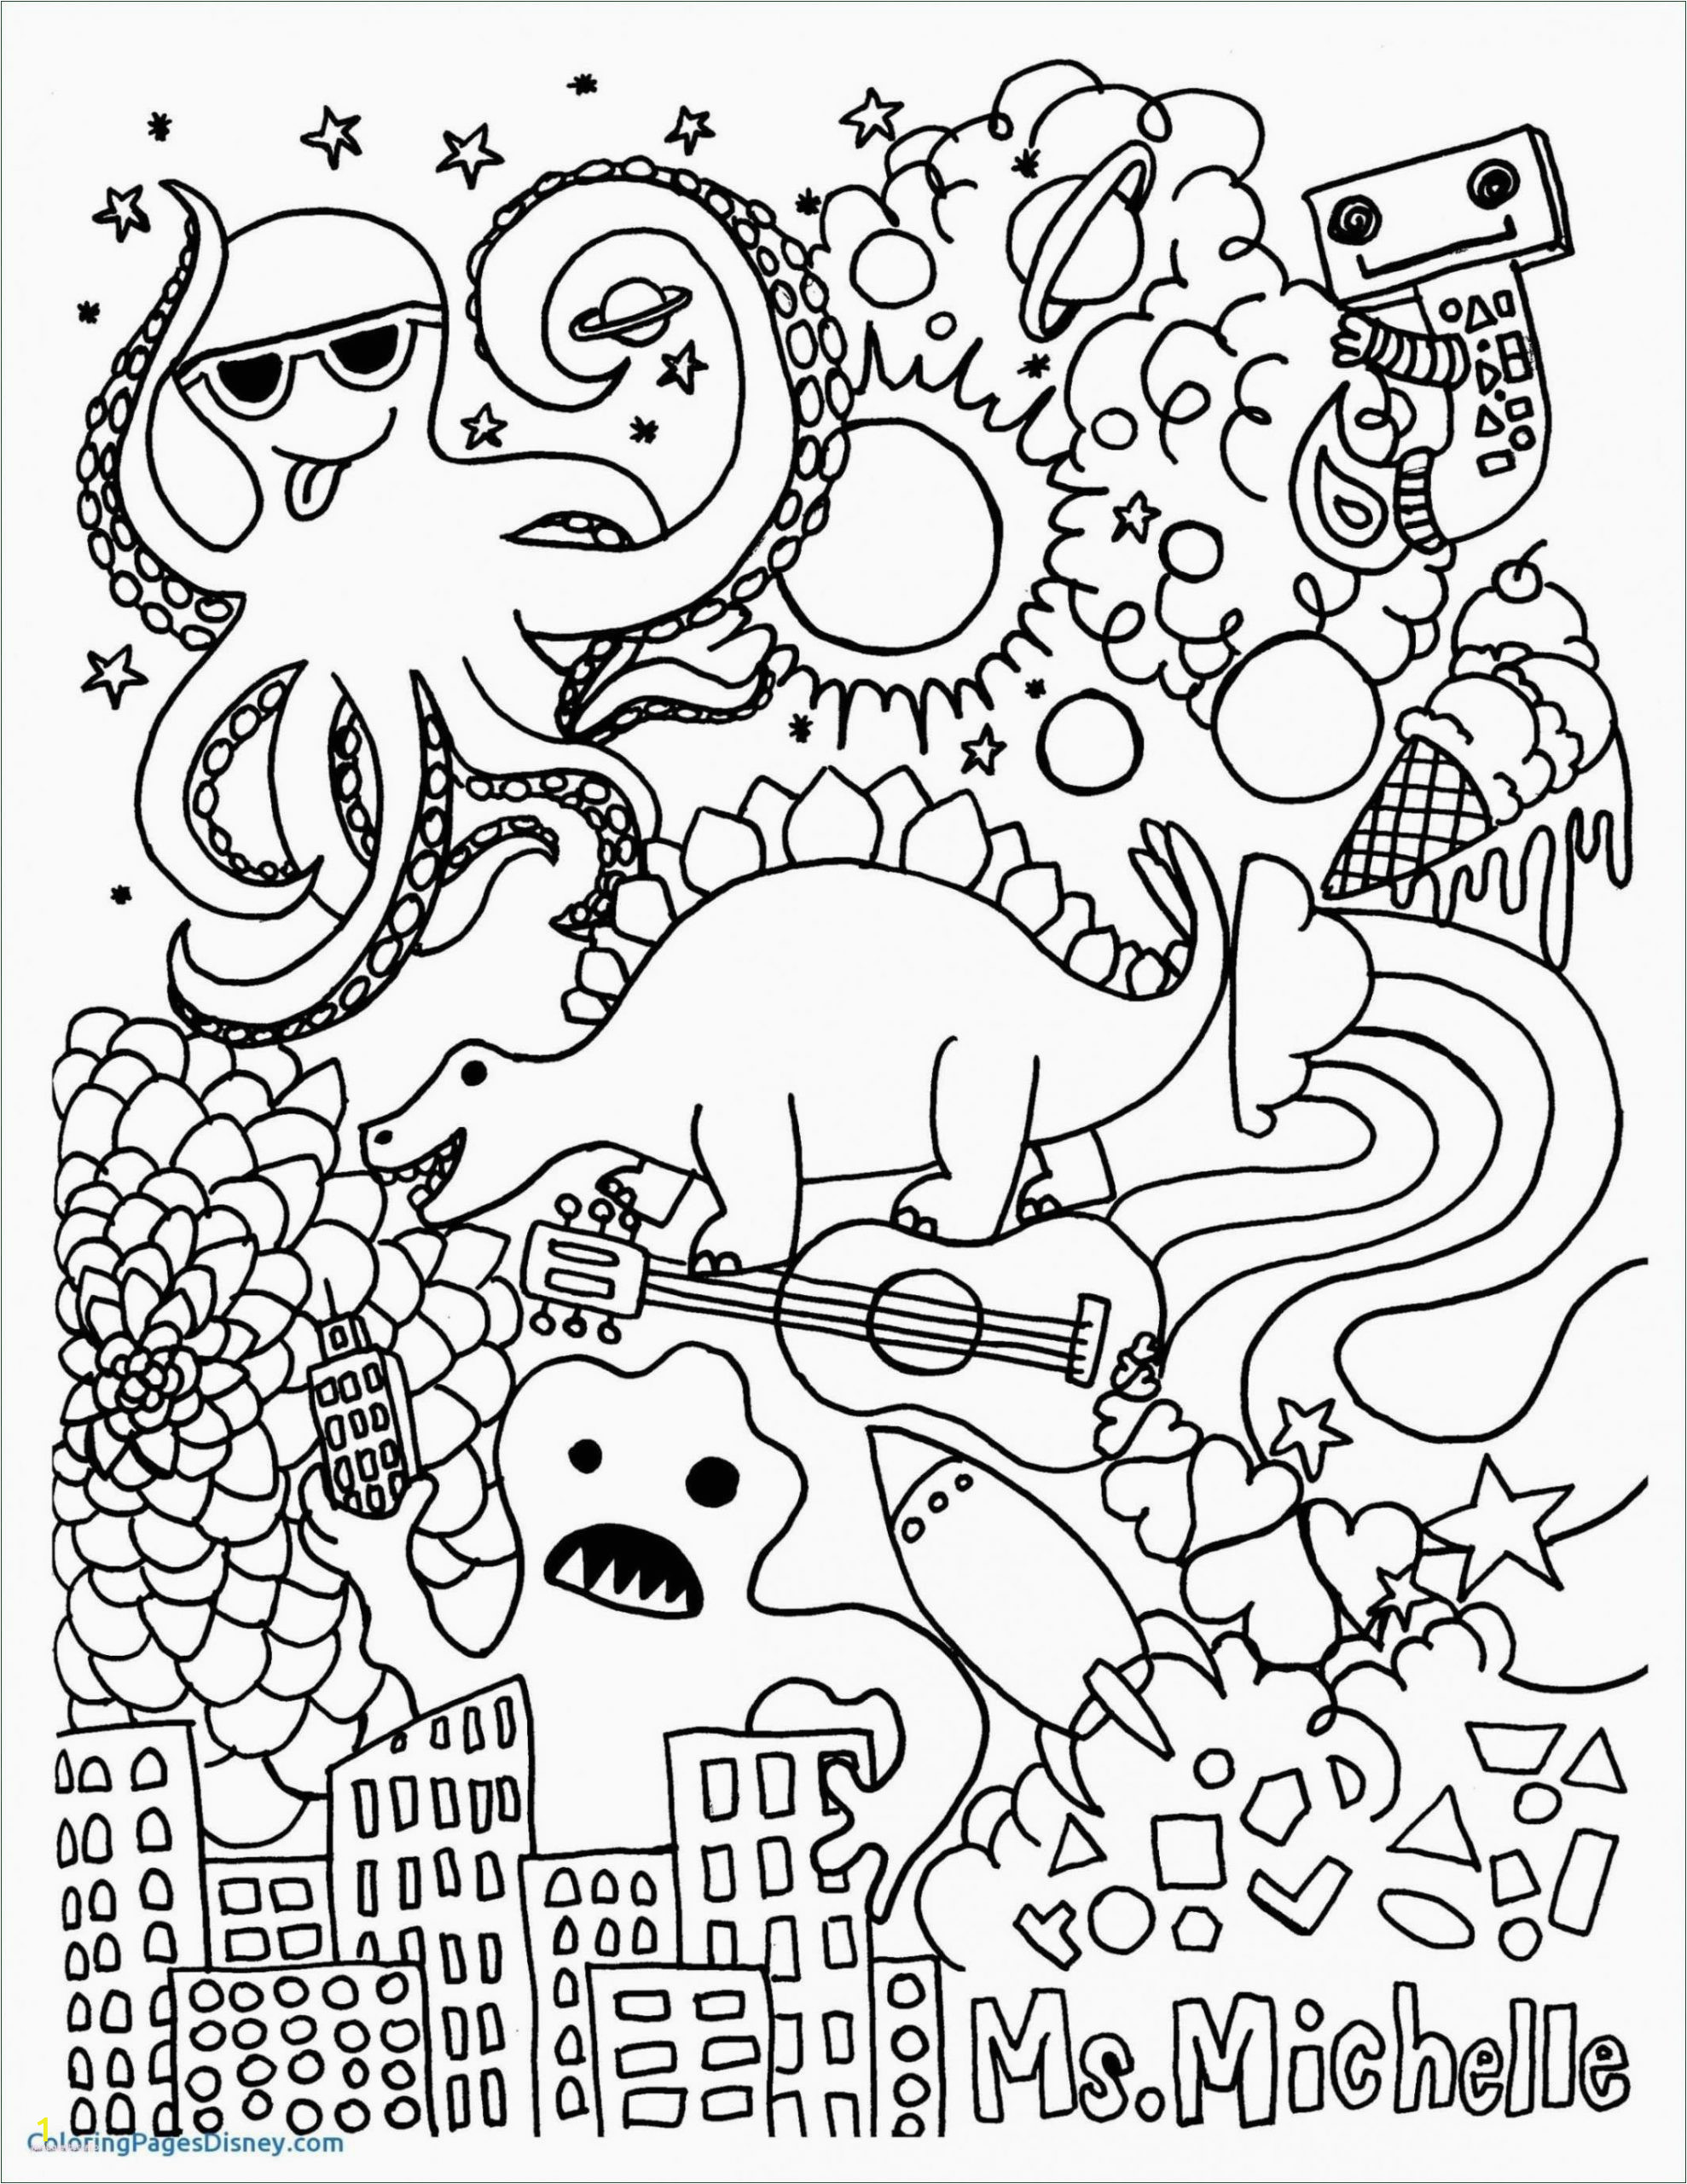 easy 4th of july coloring pages unique free printable disney coloring pages for adults latestarticles of easy 4th of july coloring pages